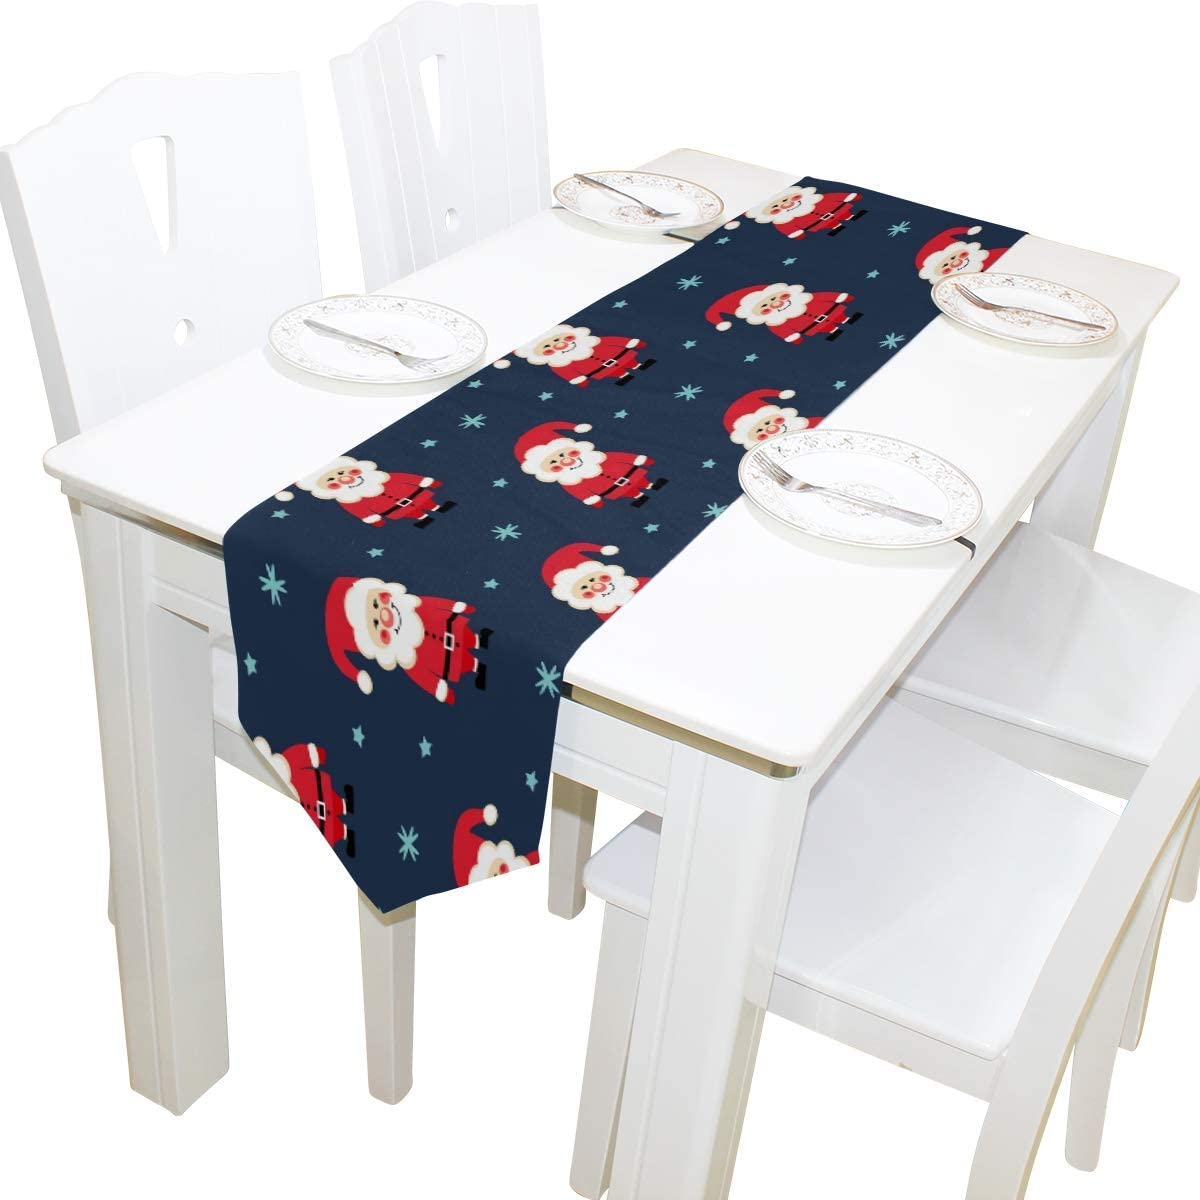 ALAZA Table Runner Home Decor,Merry Christmas Navy Blue Cute Santa Claus Polyester Table Runner Placemat for Wedding Party Coffee Table Mat Decoration 13 x 90 inches